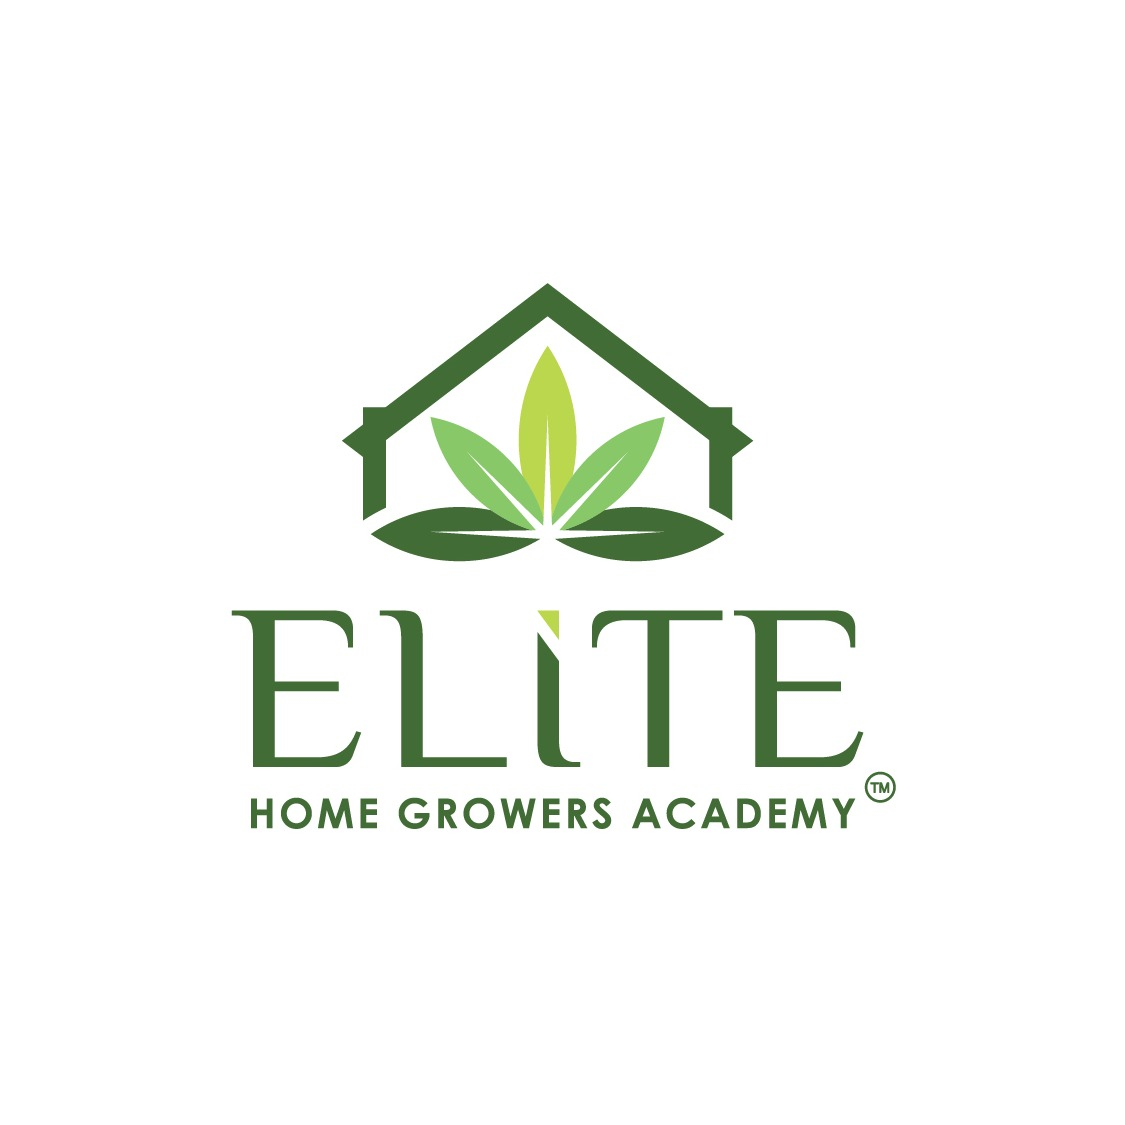 Elite Home Growers Academy_cv_edited.jpg